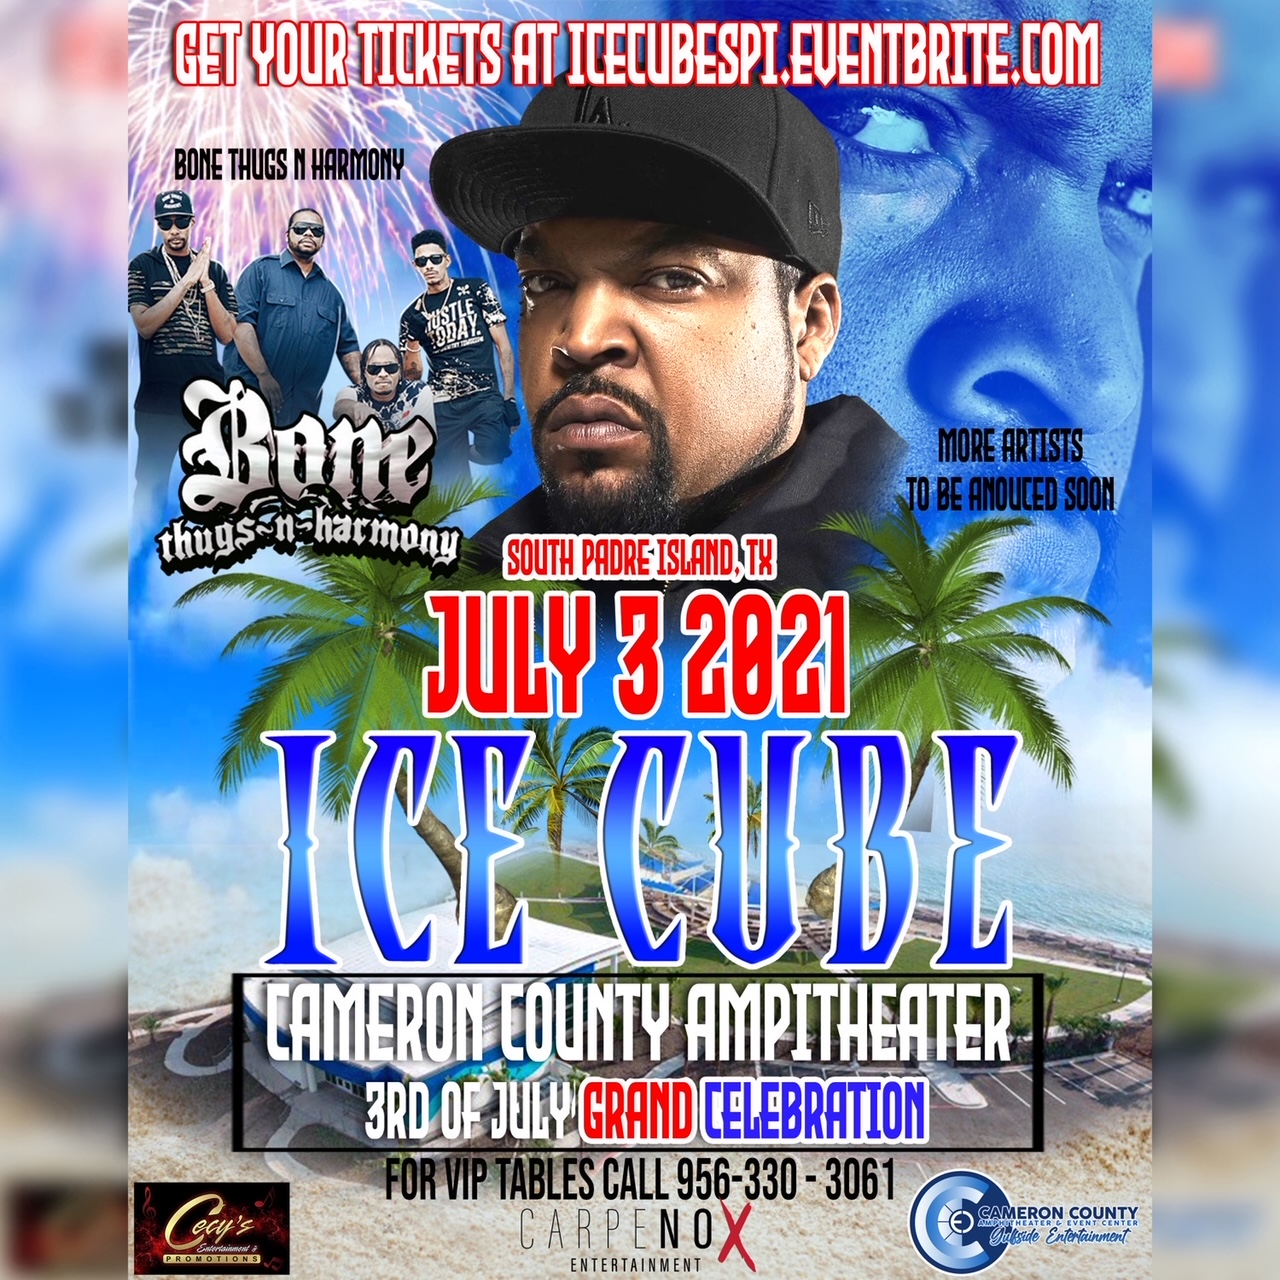 Ice Cube at the Amphitheater on SPI July 3rd 2021!